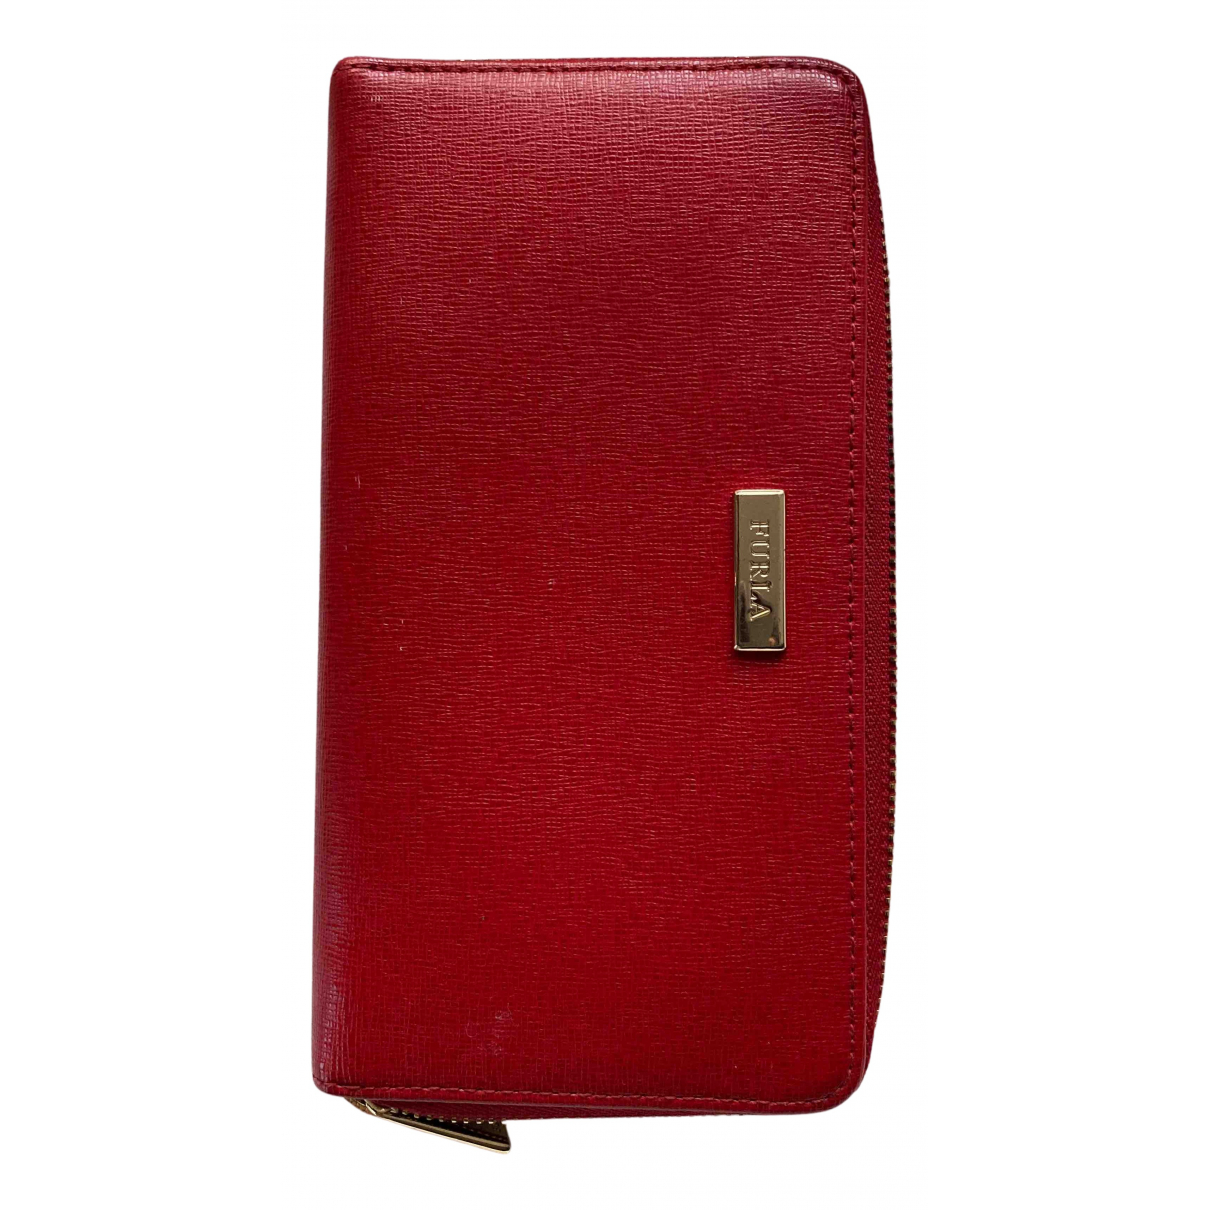 Furla N Red Leather wallet for Women N